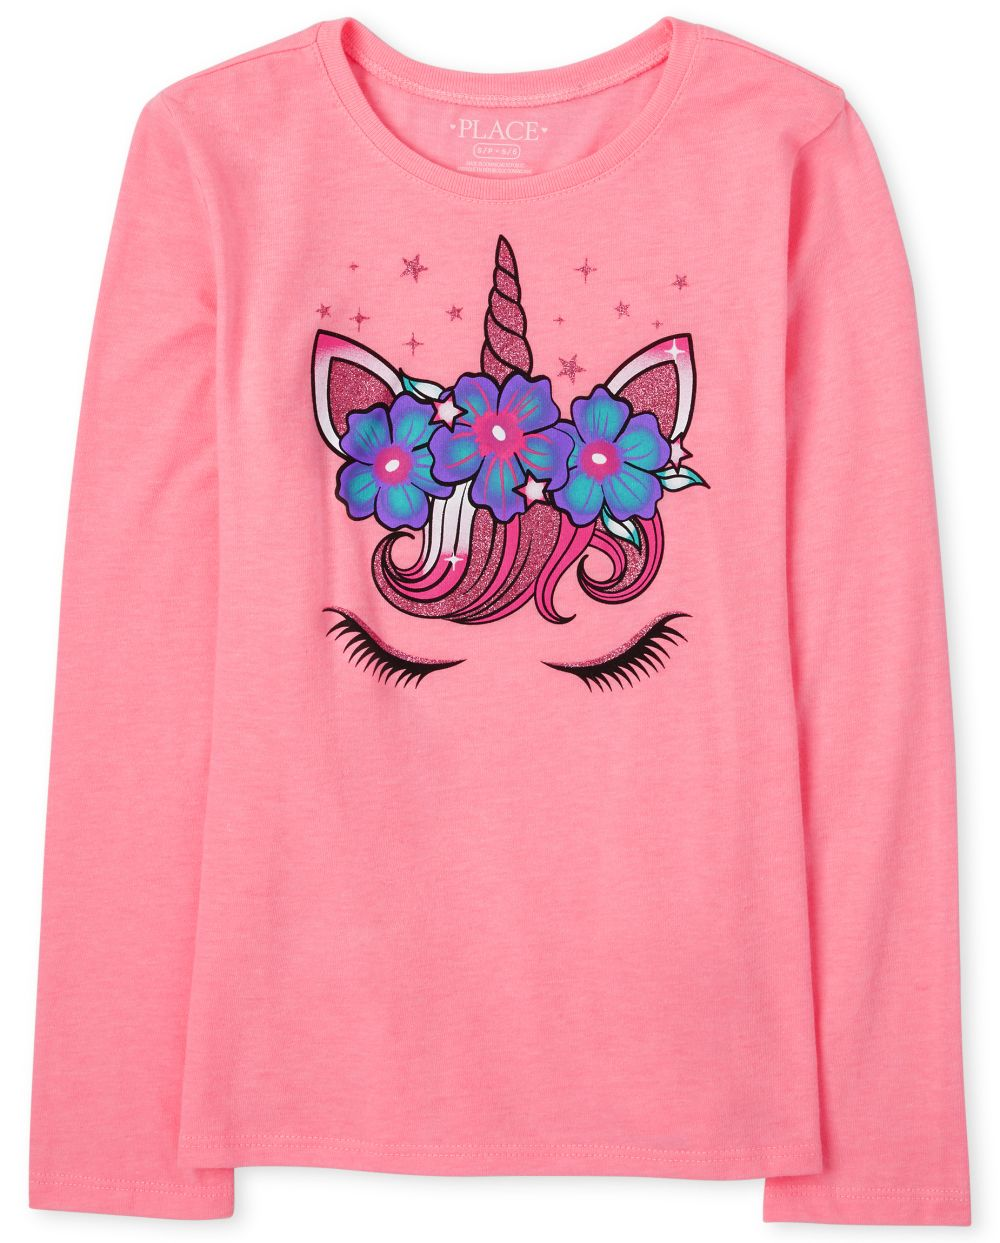 Girls Unicorn Face Graphic Tee